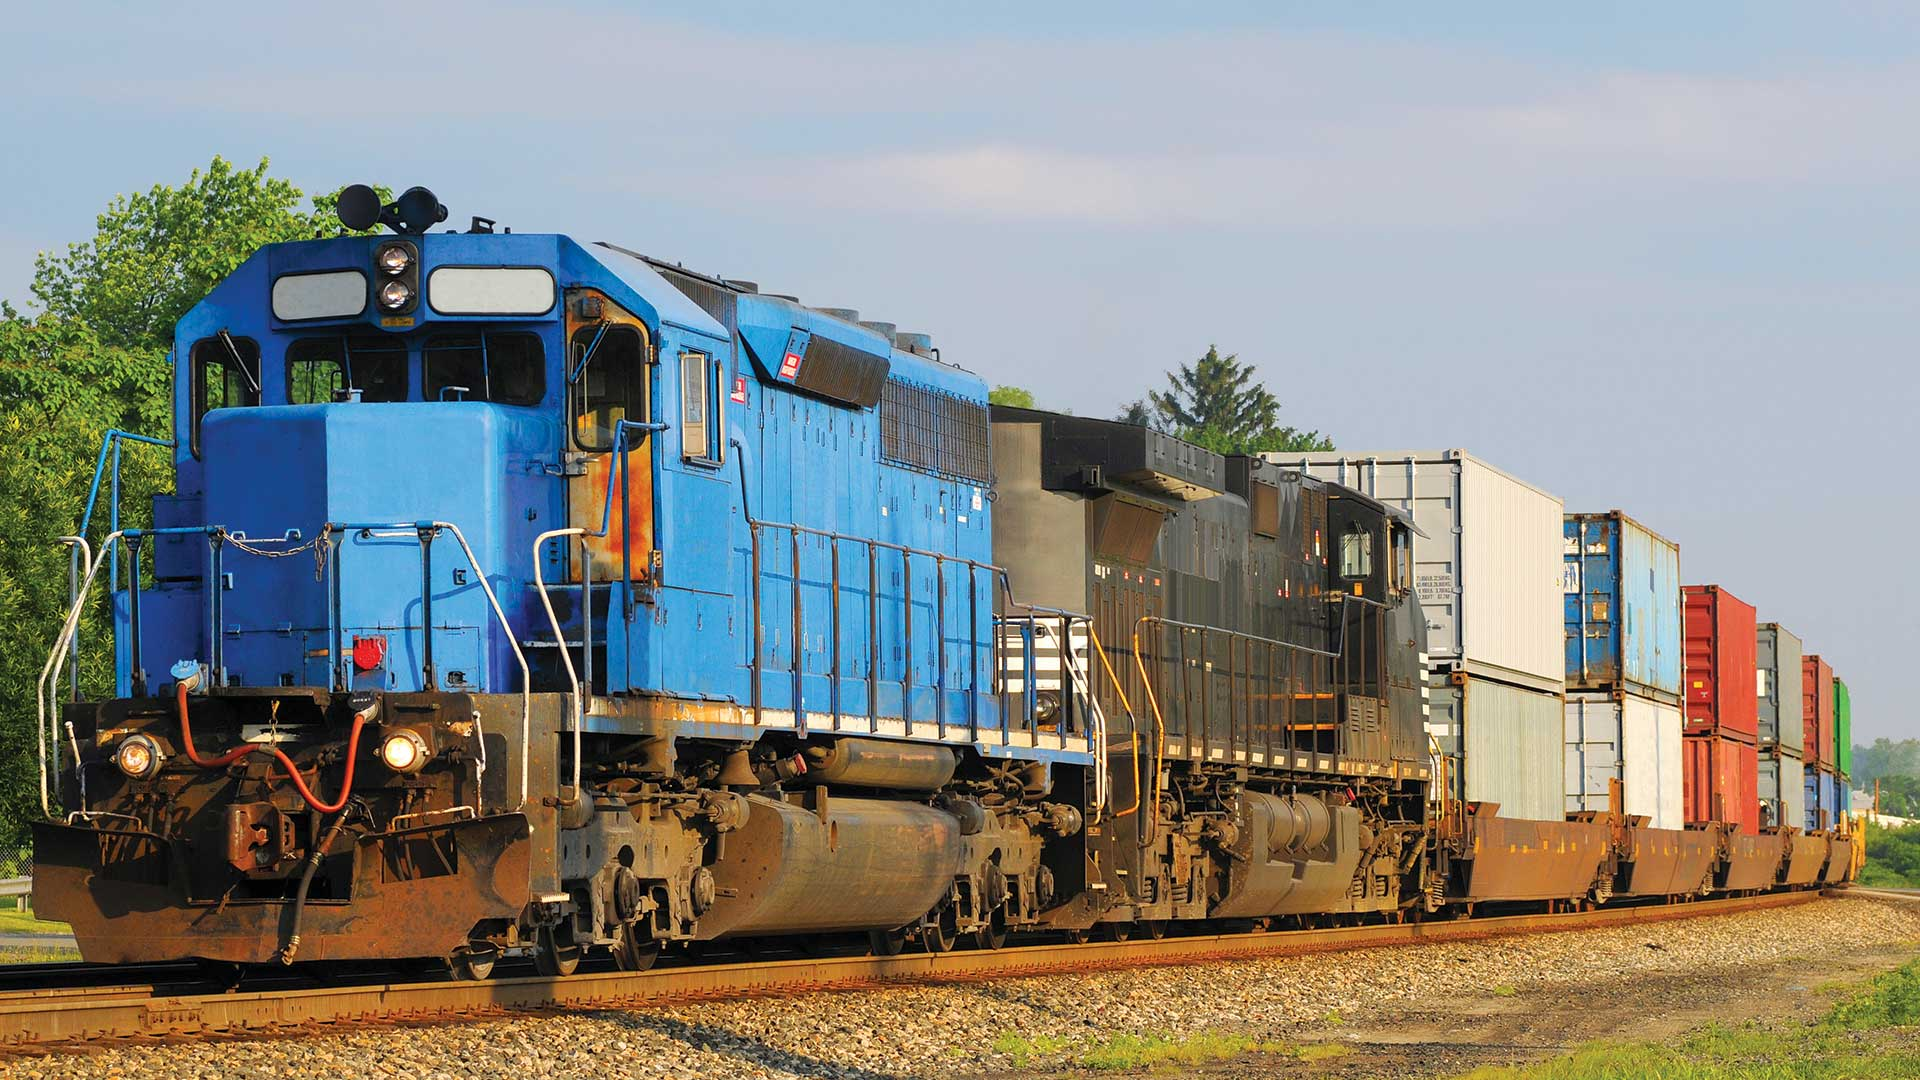 Landstar Rail Intermodal Services